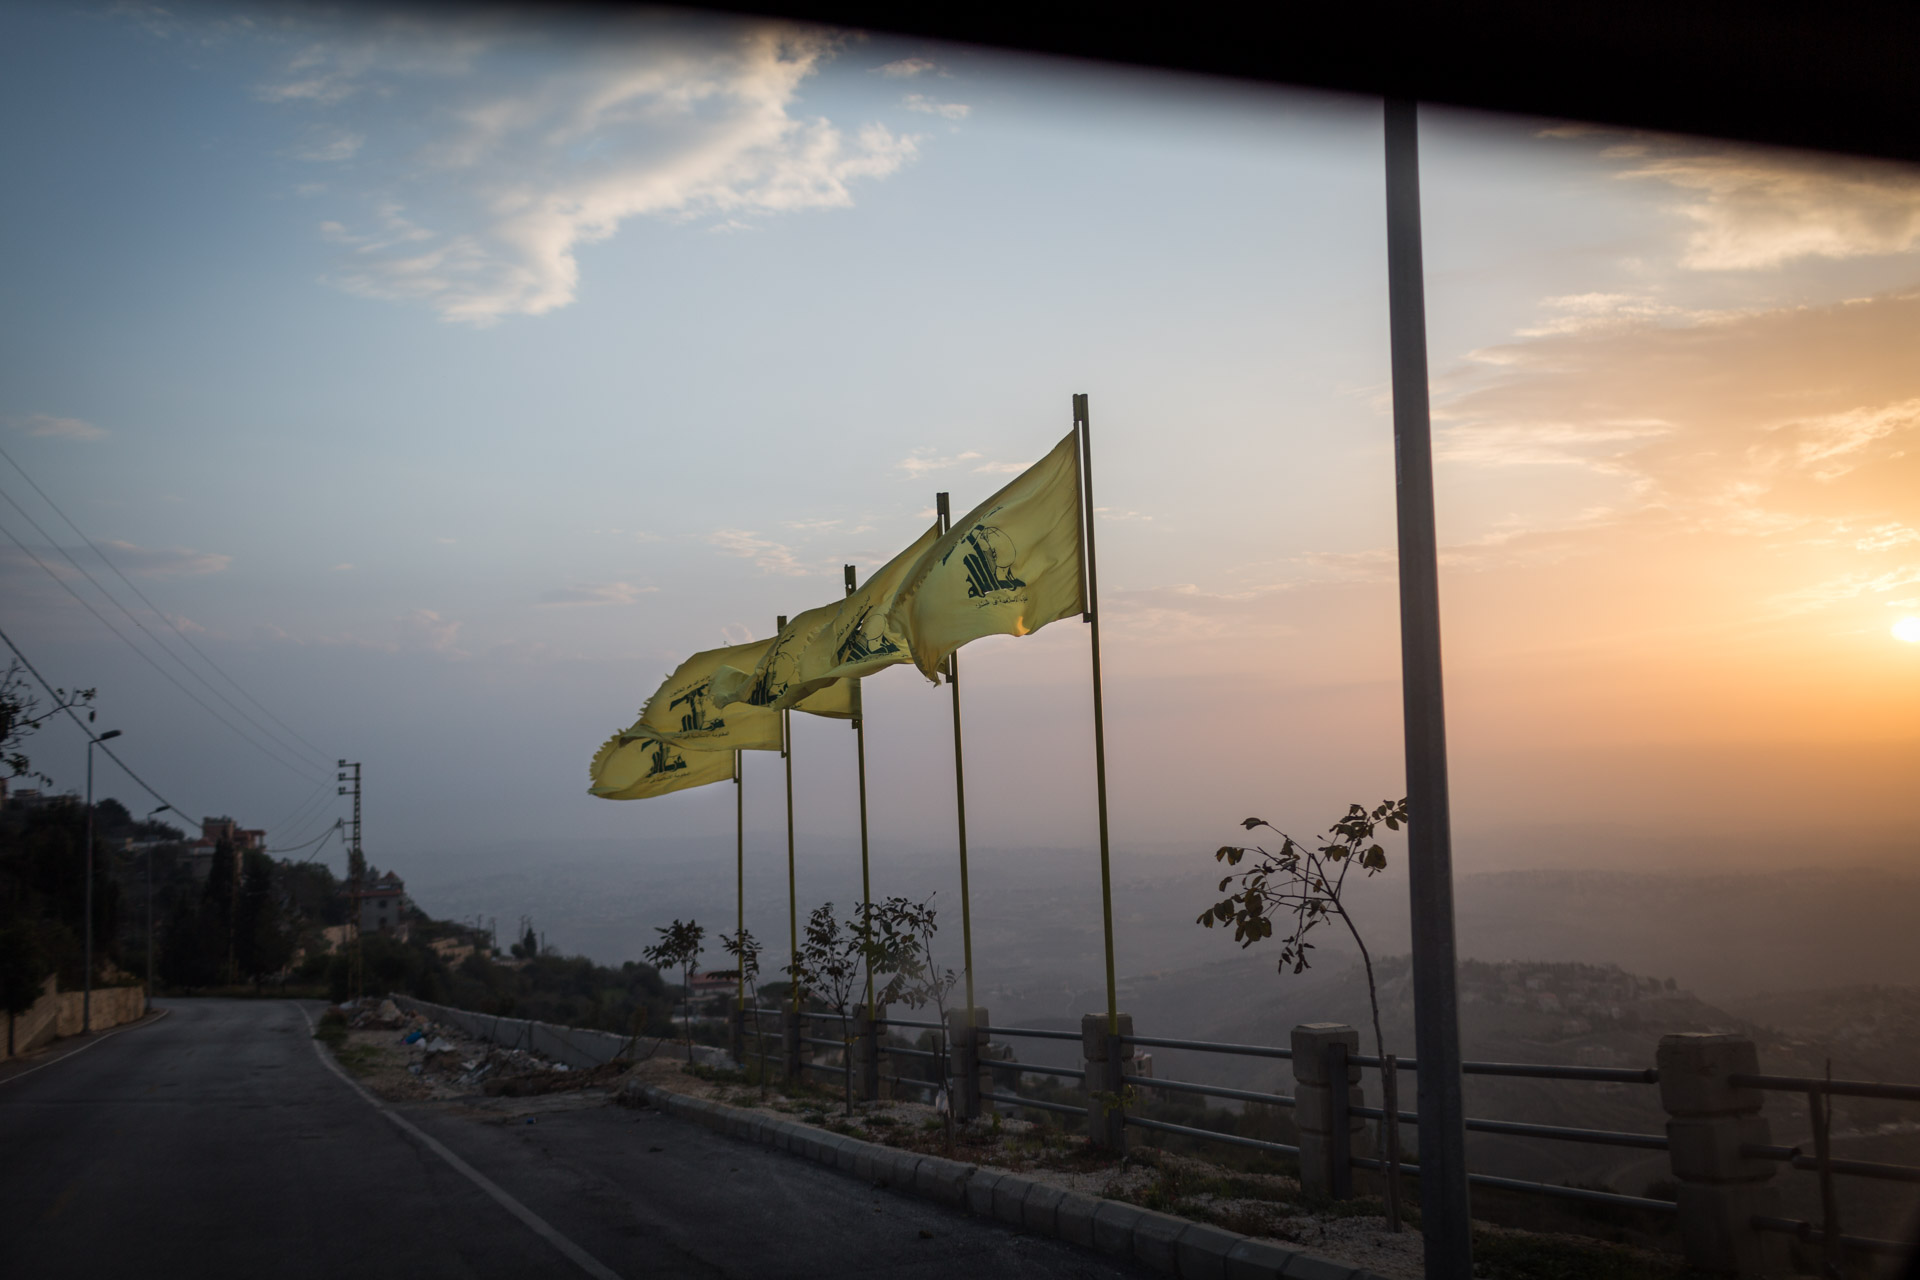 Flags of Hezbollah are waving during dusk on a road to Mleeta in Lebanon.